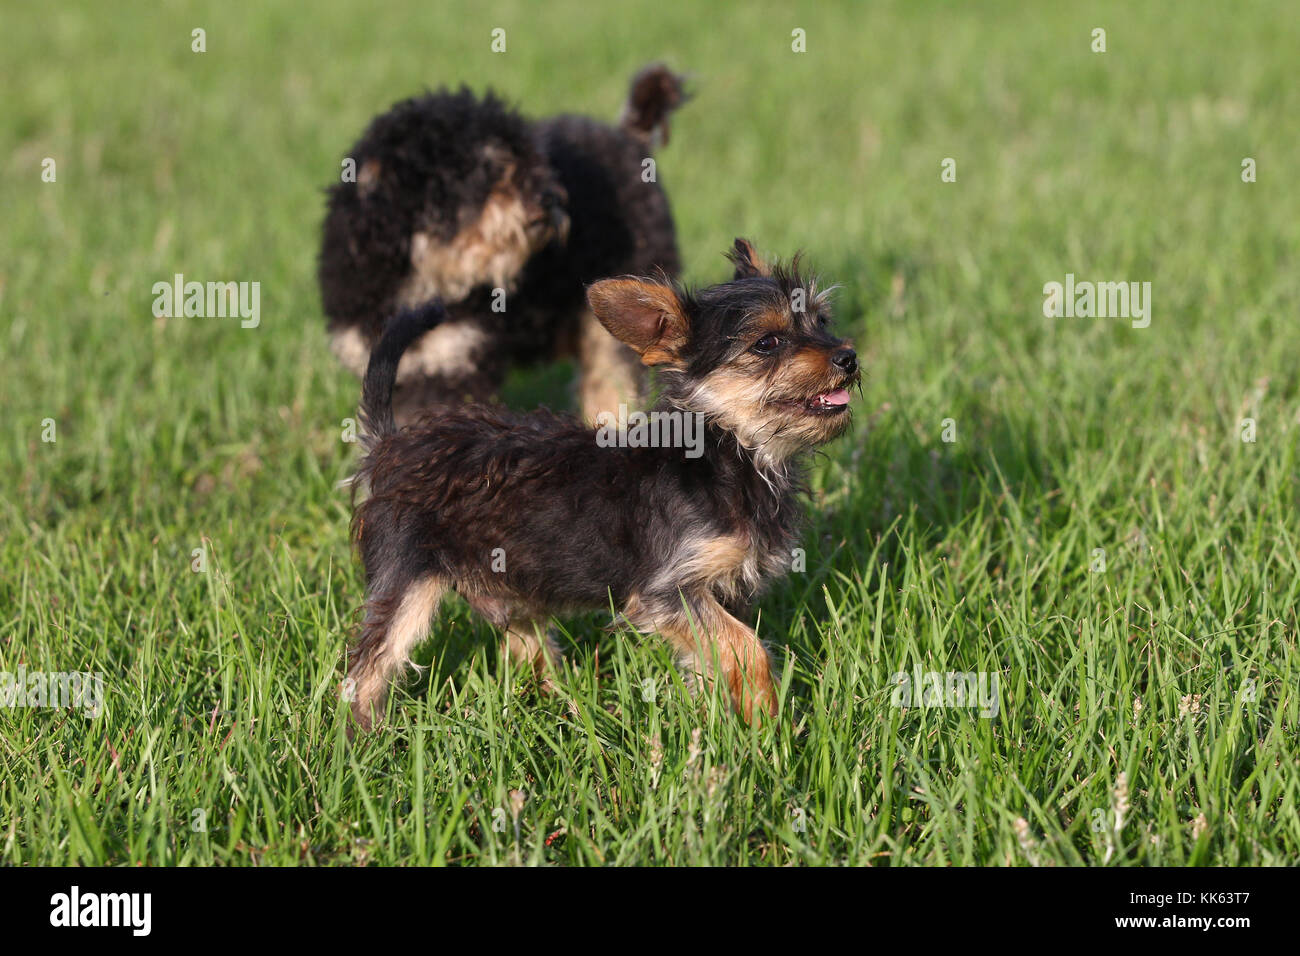 Yorkiepoo Yorkshire Terrier X Poodle Dogs Stock Photo 166706519 Alamy